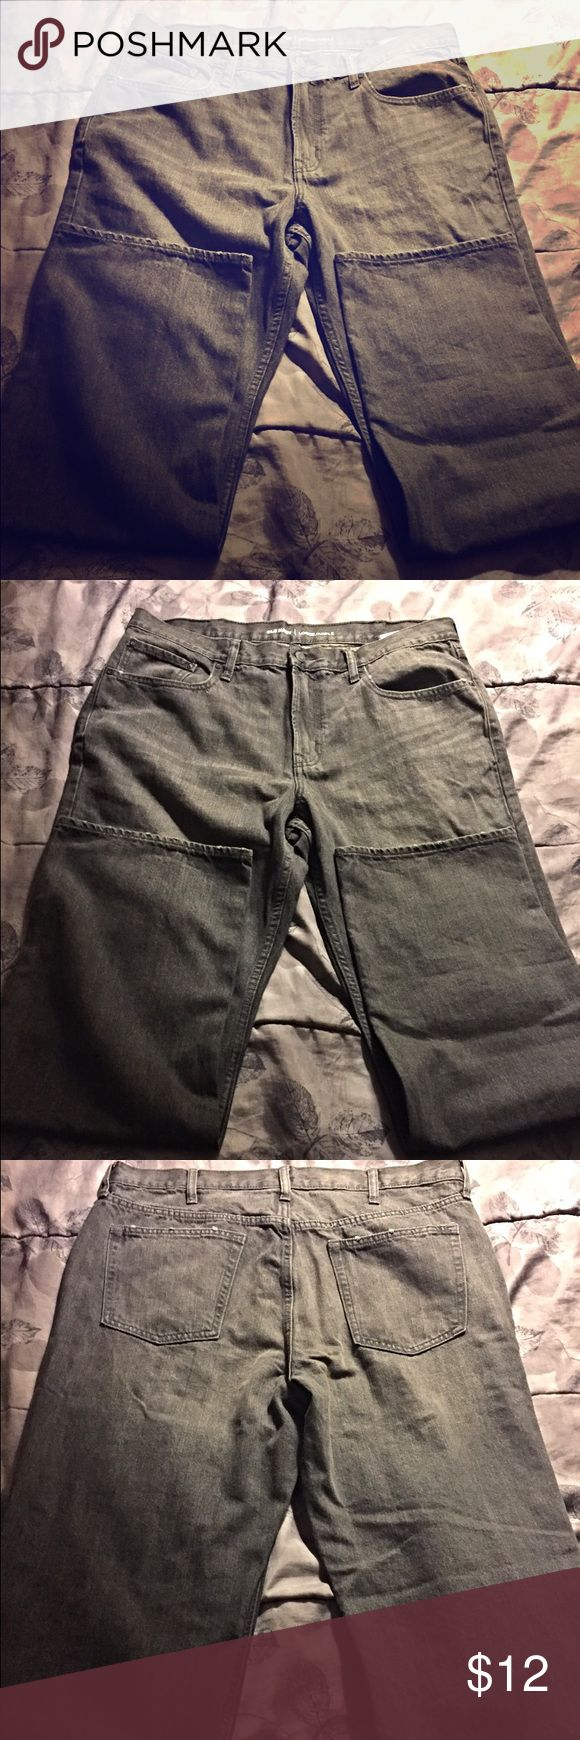 """Old Navy """"loose/amble"""" jeans Here are some gray Loose and amble jeans 👖from old navy.The pants are 38x34 and are """"true to size"""".There is another pair like this just in a different color(which is navy blue).The two pairs of jeans will be in a bundle if you want both pairs. Old Navy Jeans"""